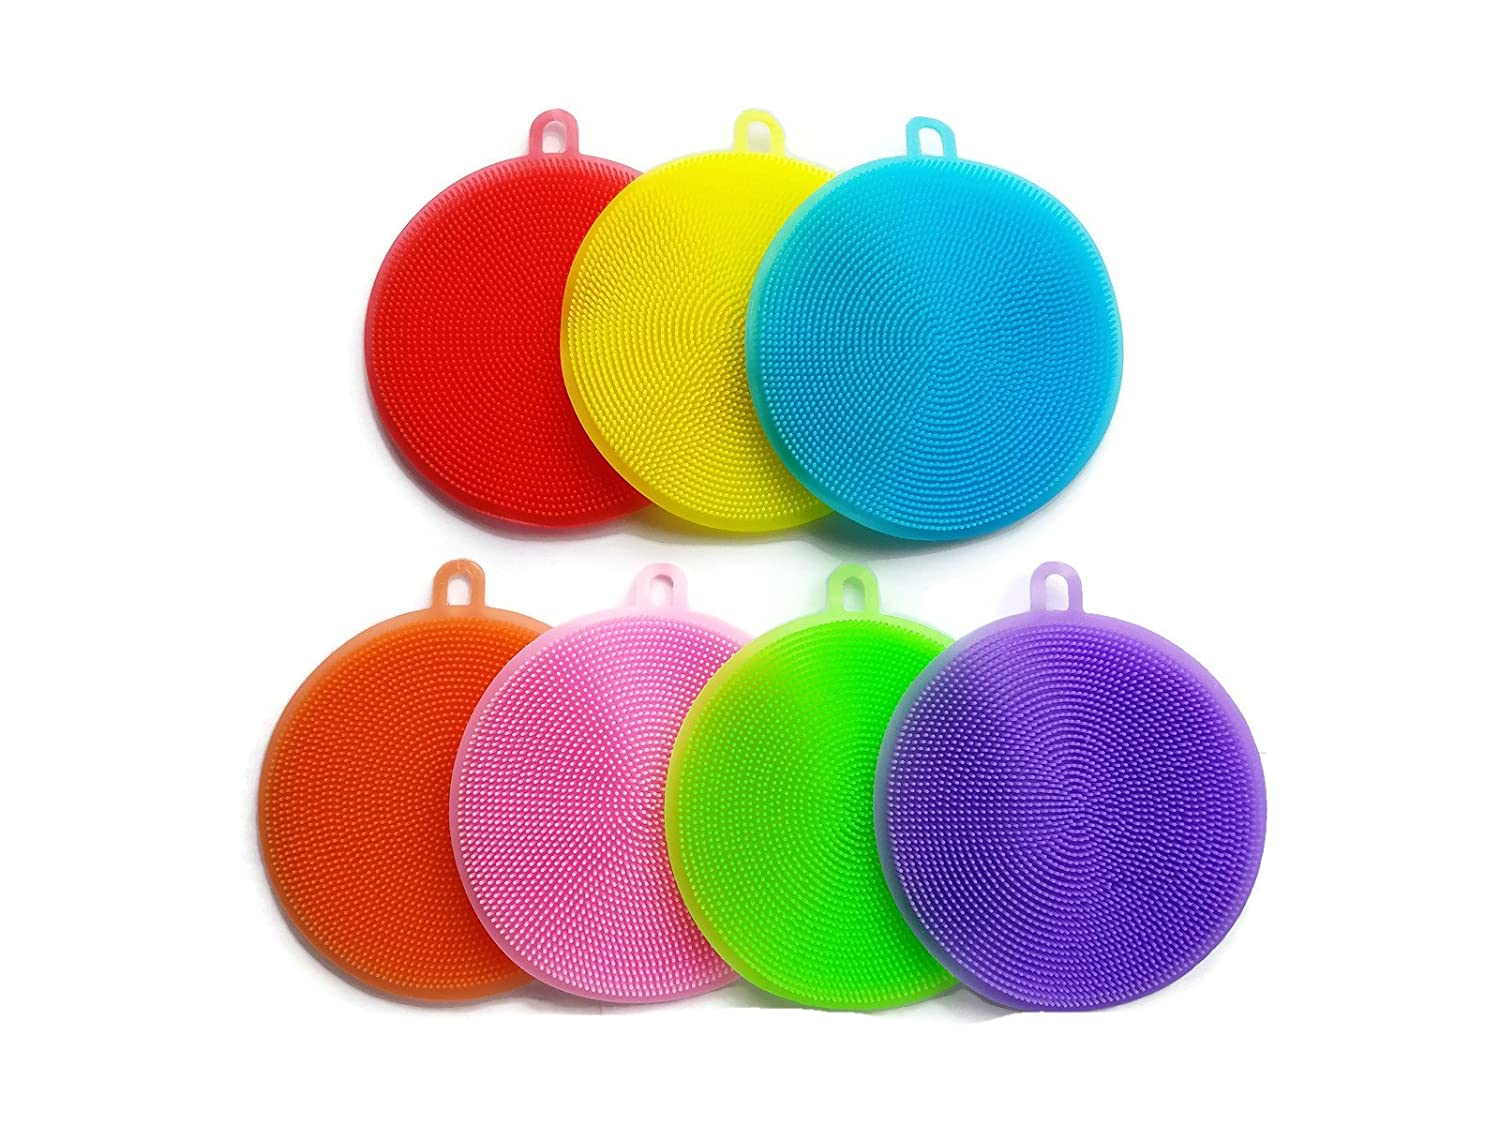 Silicone Sponge Dish Washing Brush Scrubber Food-Grade Antibacterial BPA Free Multipurpose Non Stick Cleaning Antimicrobial Mildew free smart kitchen gadgets (Pack of 7, Mixed Color) by JJ Company SWEET-787